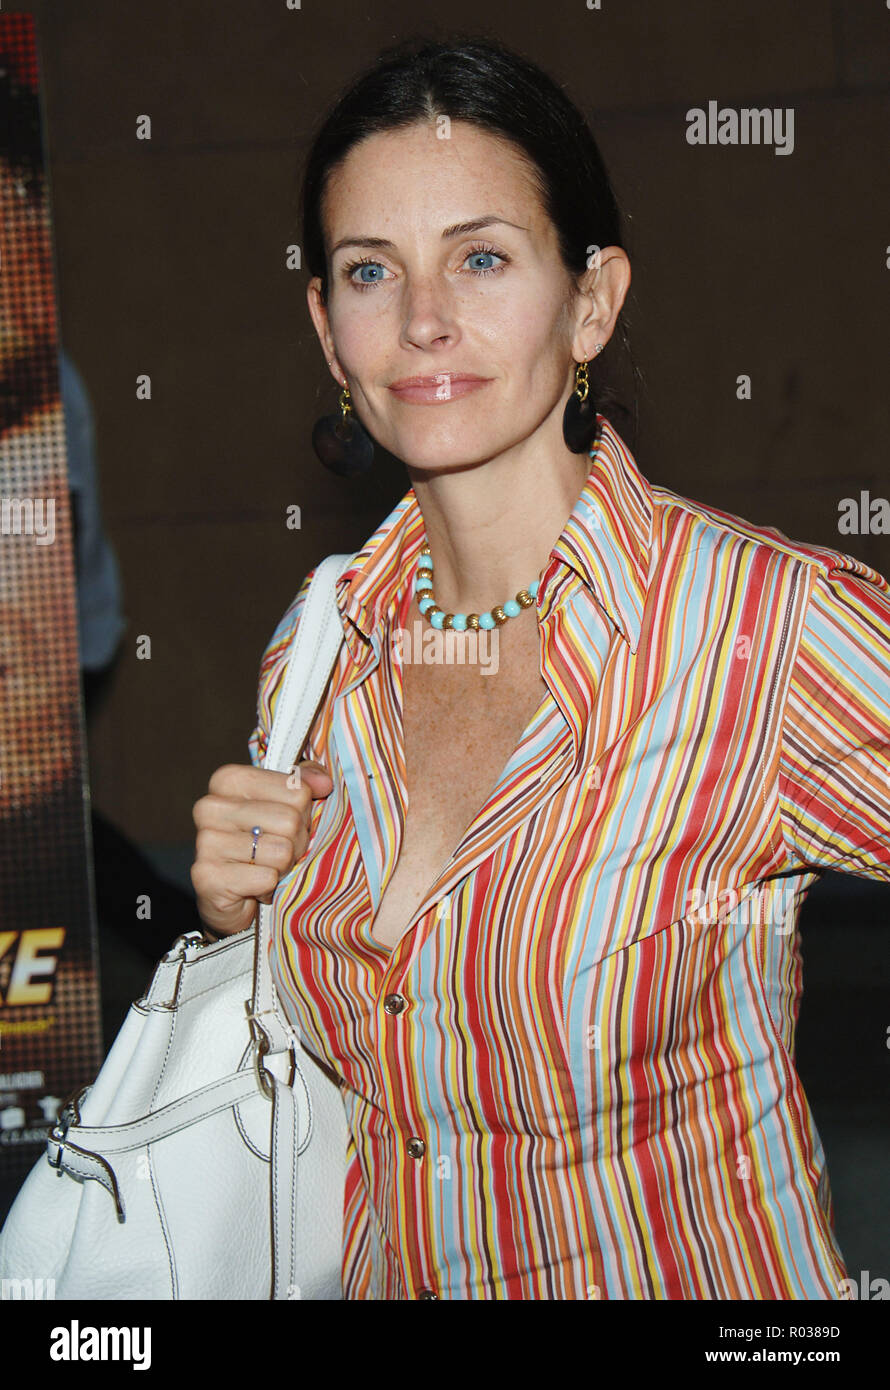 Courtney Cox-Arquette arriving at the Layer Cake Premiere at the Egyptian Theatre in Los Angeles. may 2, 2005. 11_Cox-ArquetteCourtney090 Red Carpet Event, Vertical, USA, Film Industry, Celebrities,  Photography, Bestof, Arts Culture and Entertainment, Topix Celebrities fashion /  Vertical, Best of, Event in Hollywood Life - California,  Red Carpet and backstage, USA, Film Industry, Celebrities,  movie celebrities, TV celebrities, Music celebrities, Photography, Bestof, Arts Culture and Entertainment,  Topix, headshot, vertical, one person,, from the year , 2005, inquiry tsuni@Gamma-USA.com - Stock Image